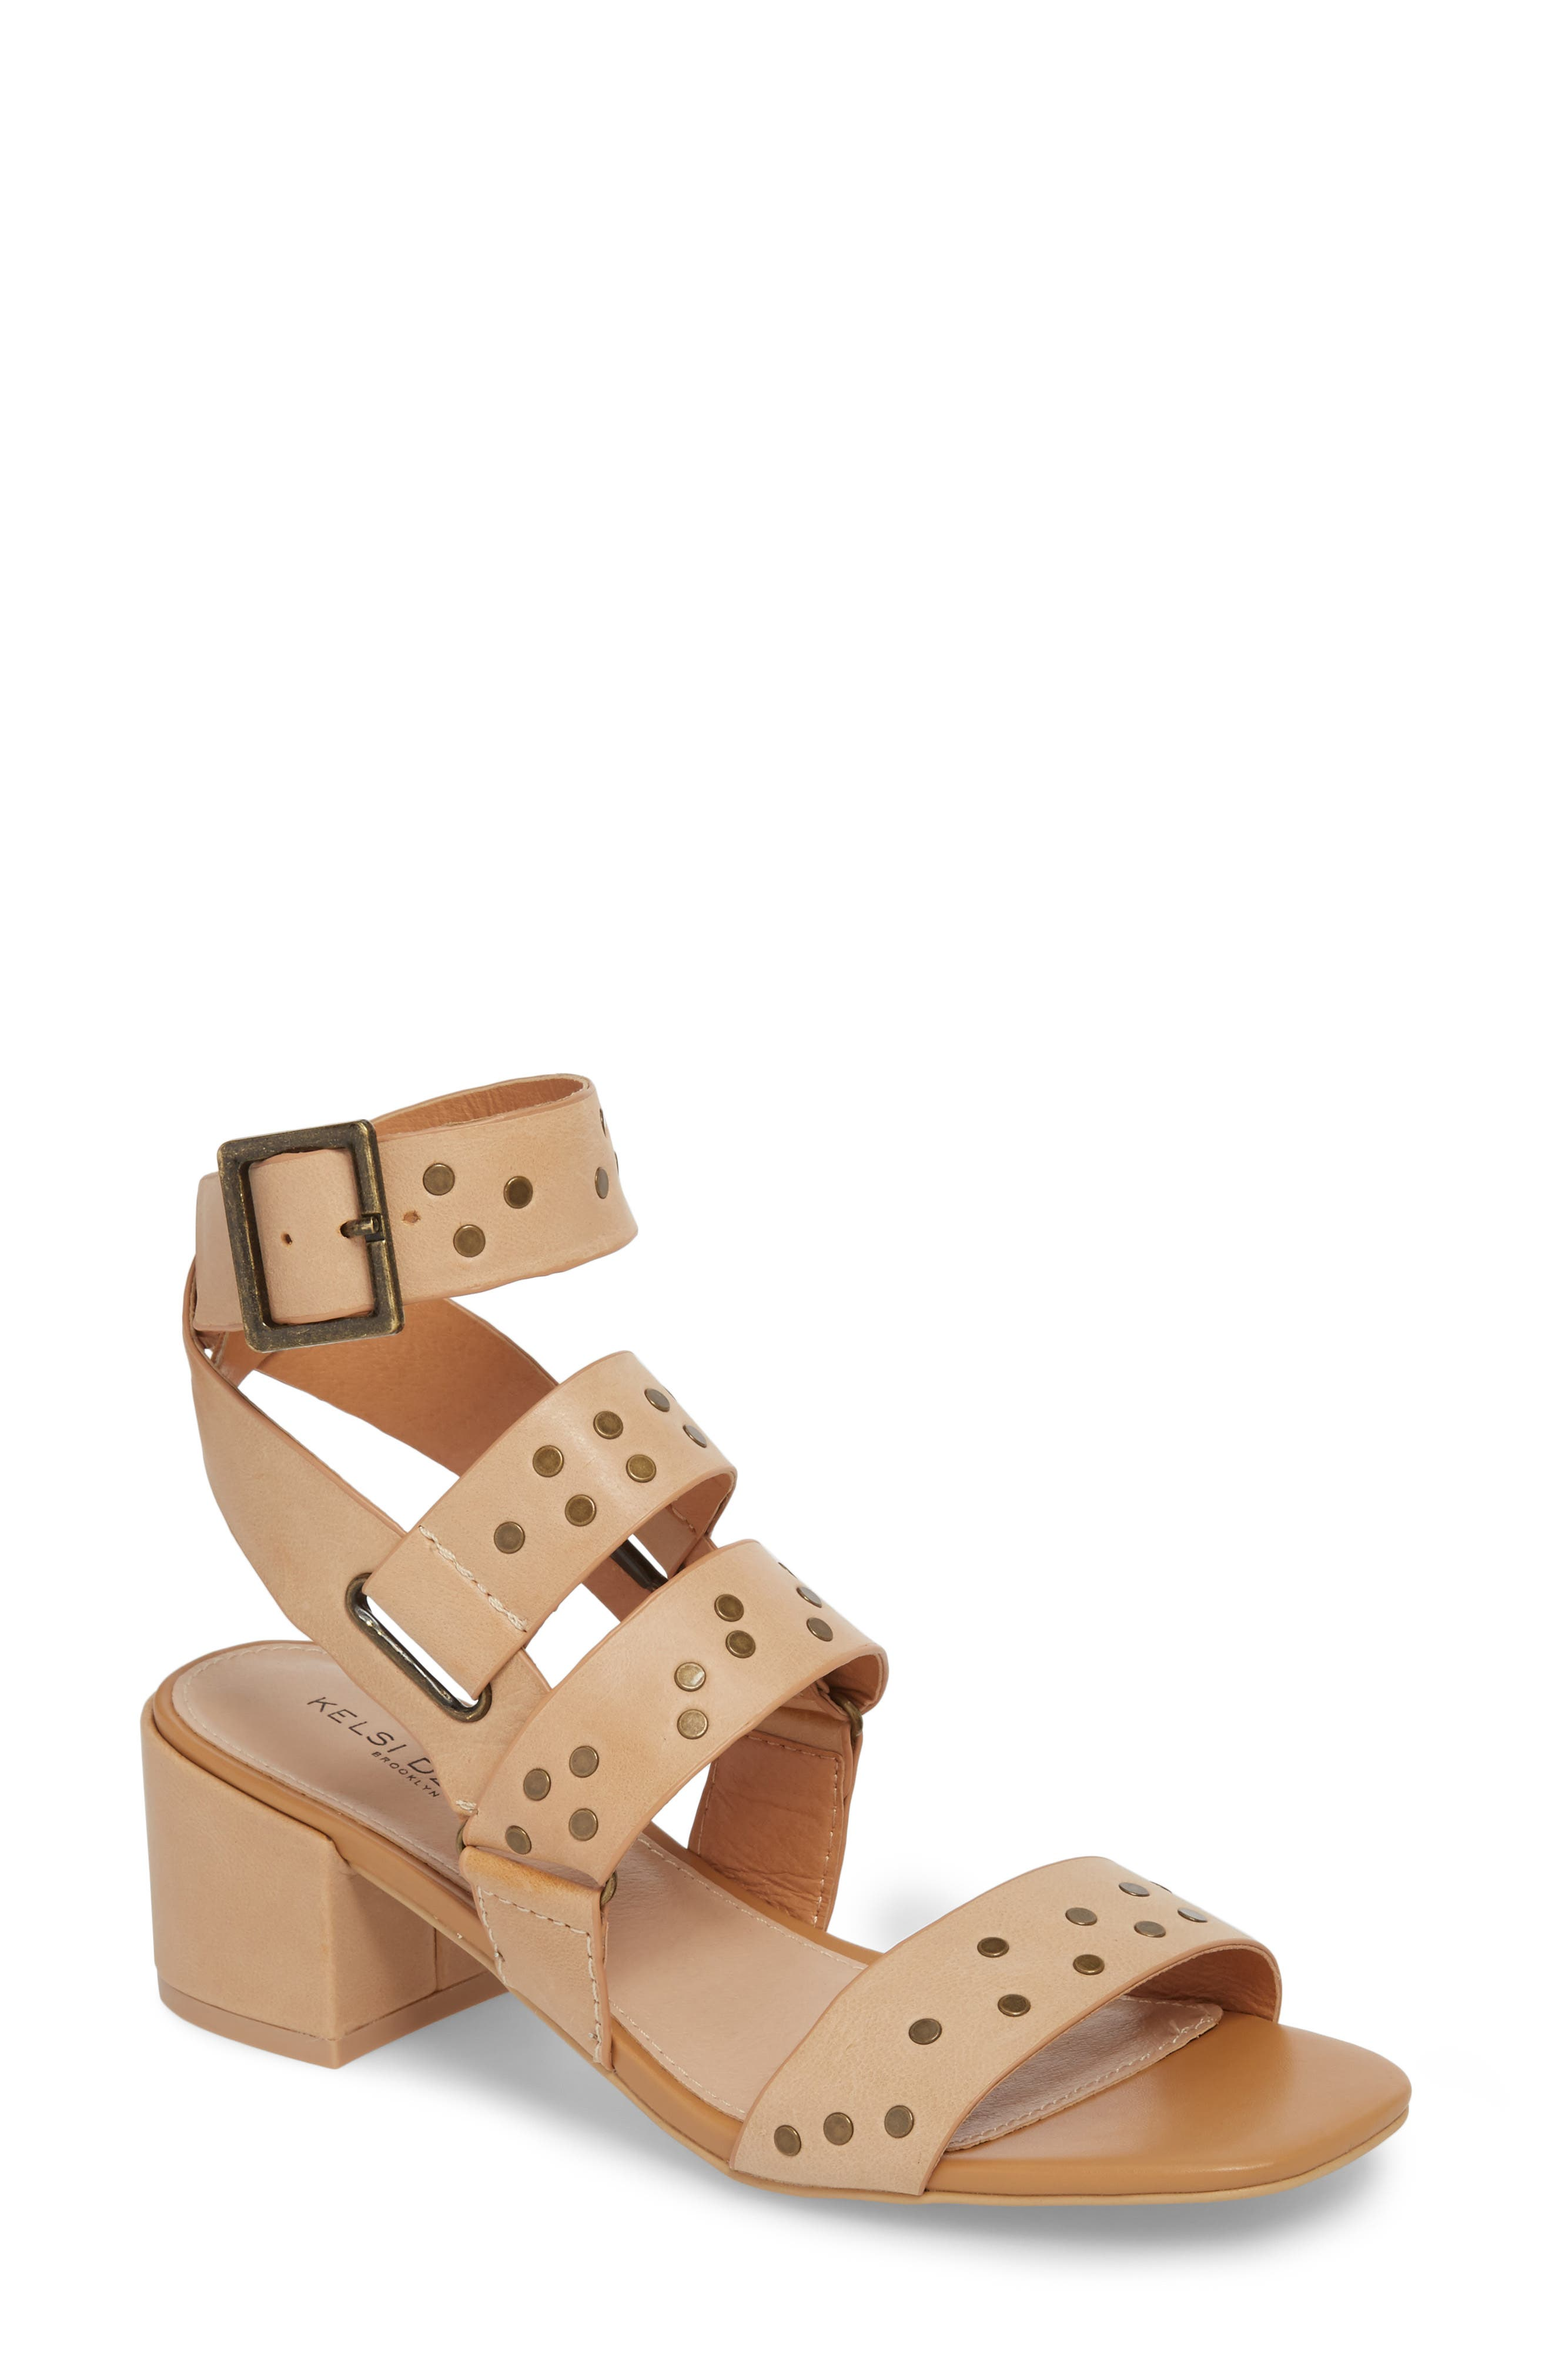 Seabring City Sandal,                         Main,                         color, Tan Leather